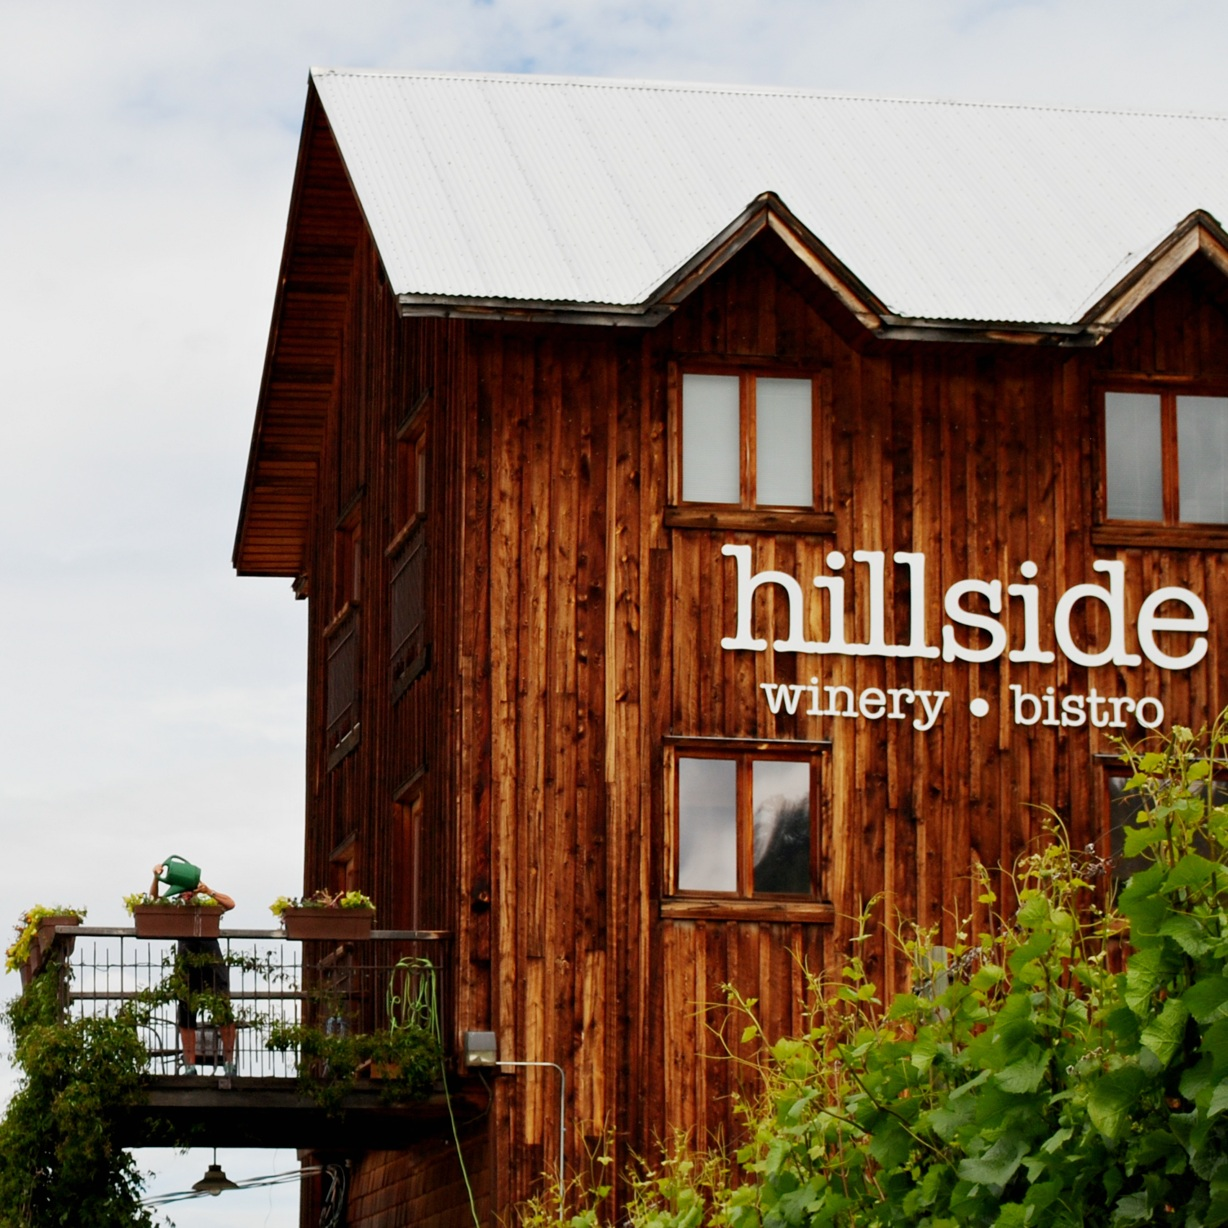 Hillside+Barn+1.jpg